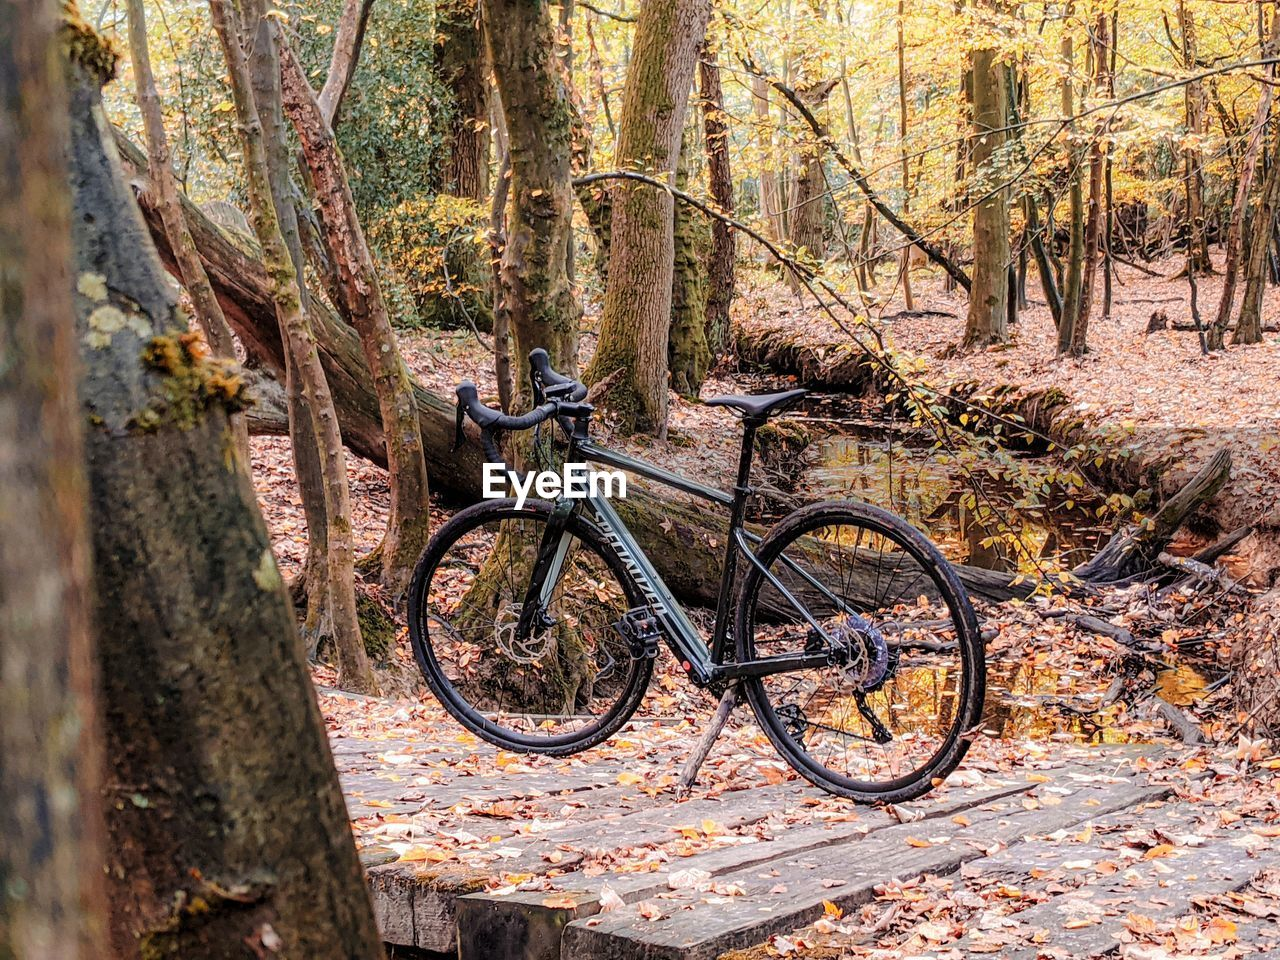 BICYCLE PARKED BY TREE IN FOREST